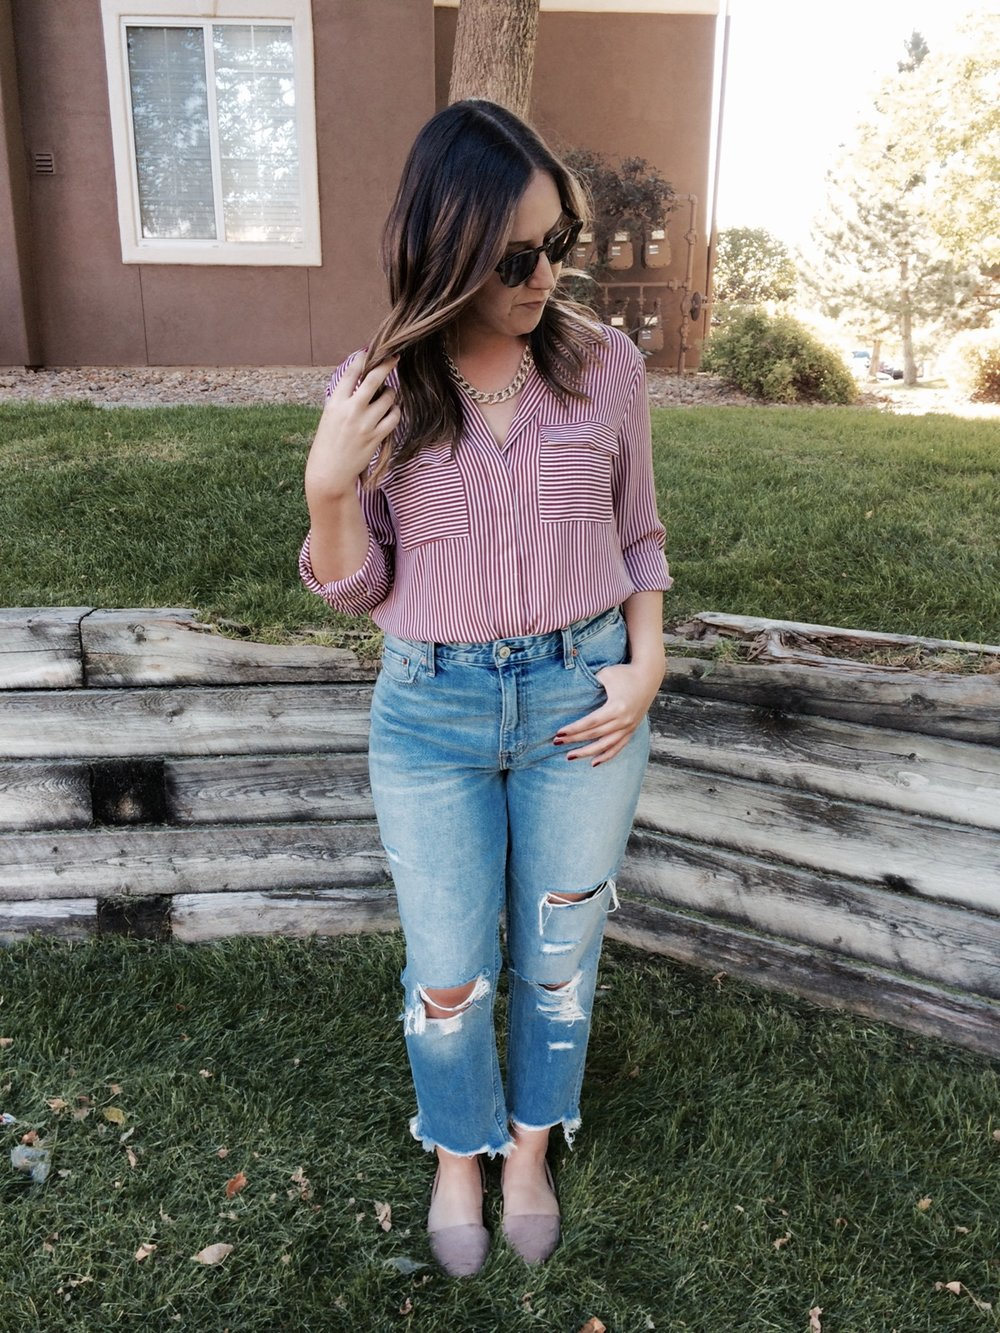 For my second look, I paired classic pieces like my utility blouse and d'Orsay flats with the boyfriend jeans to make an otherwise simple outfit, appear edgier.